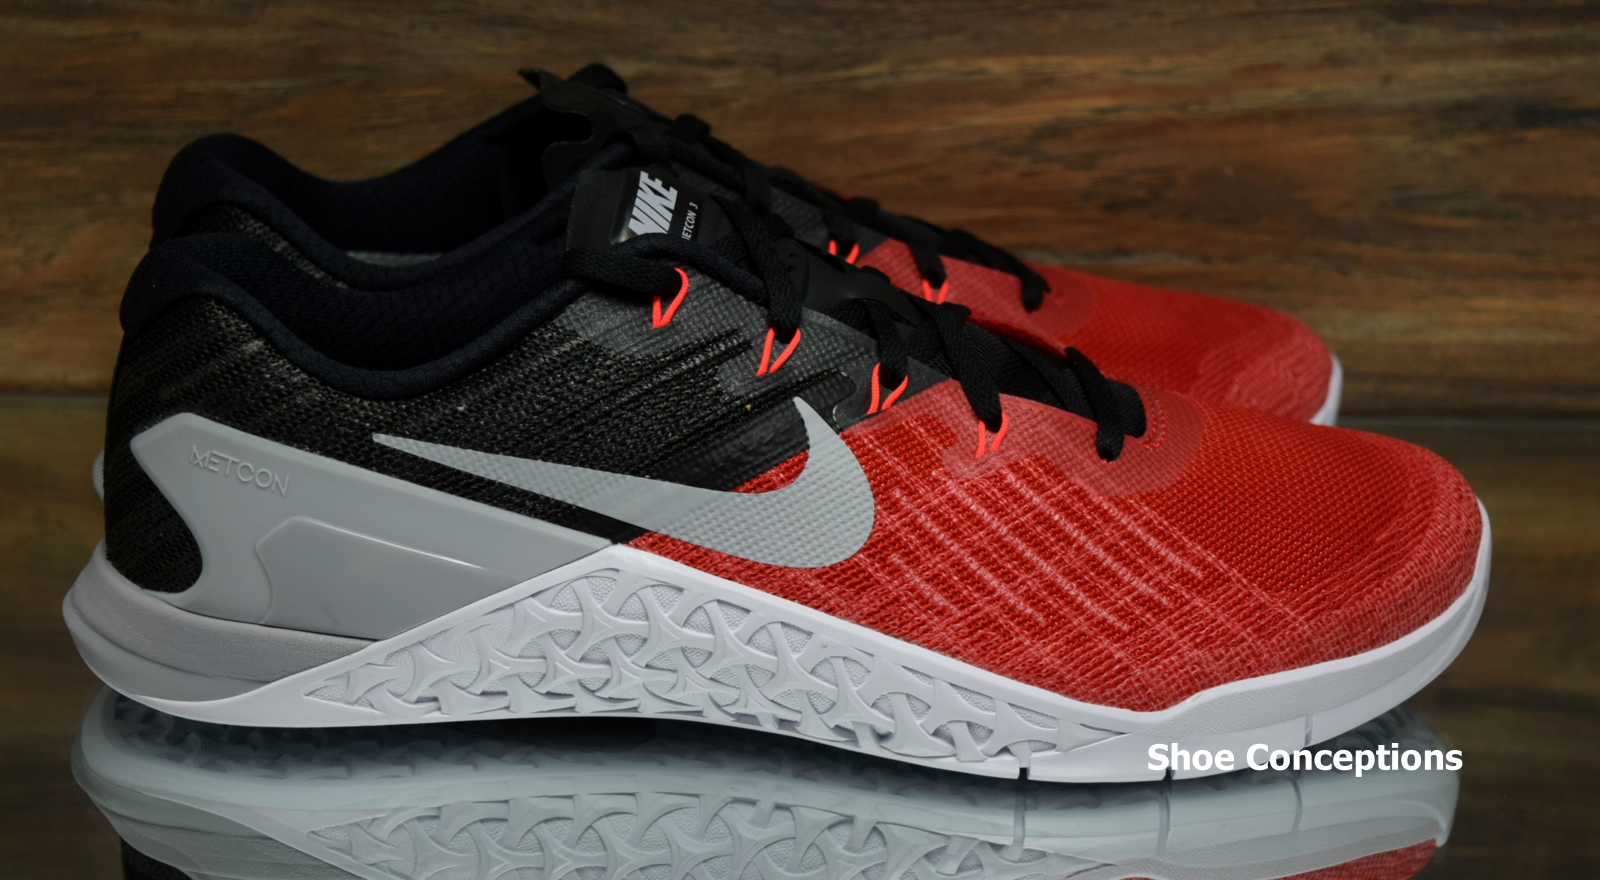 a88d5d8f26fe6 ... Nike Metcon 3 Red Grey Black 852928-600 Training Training Training  Shoes Men s Multi Size ...